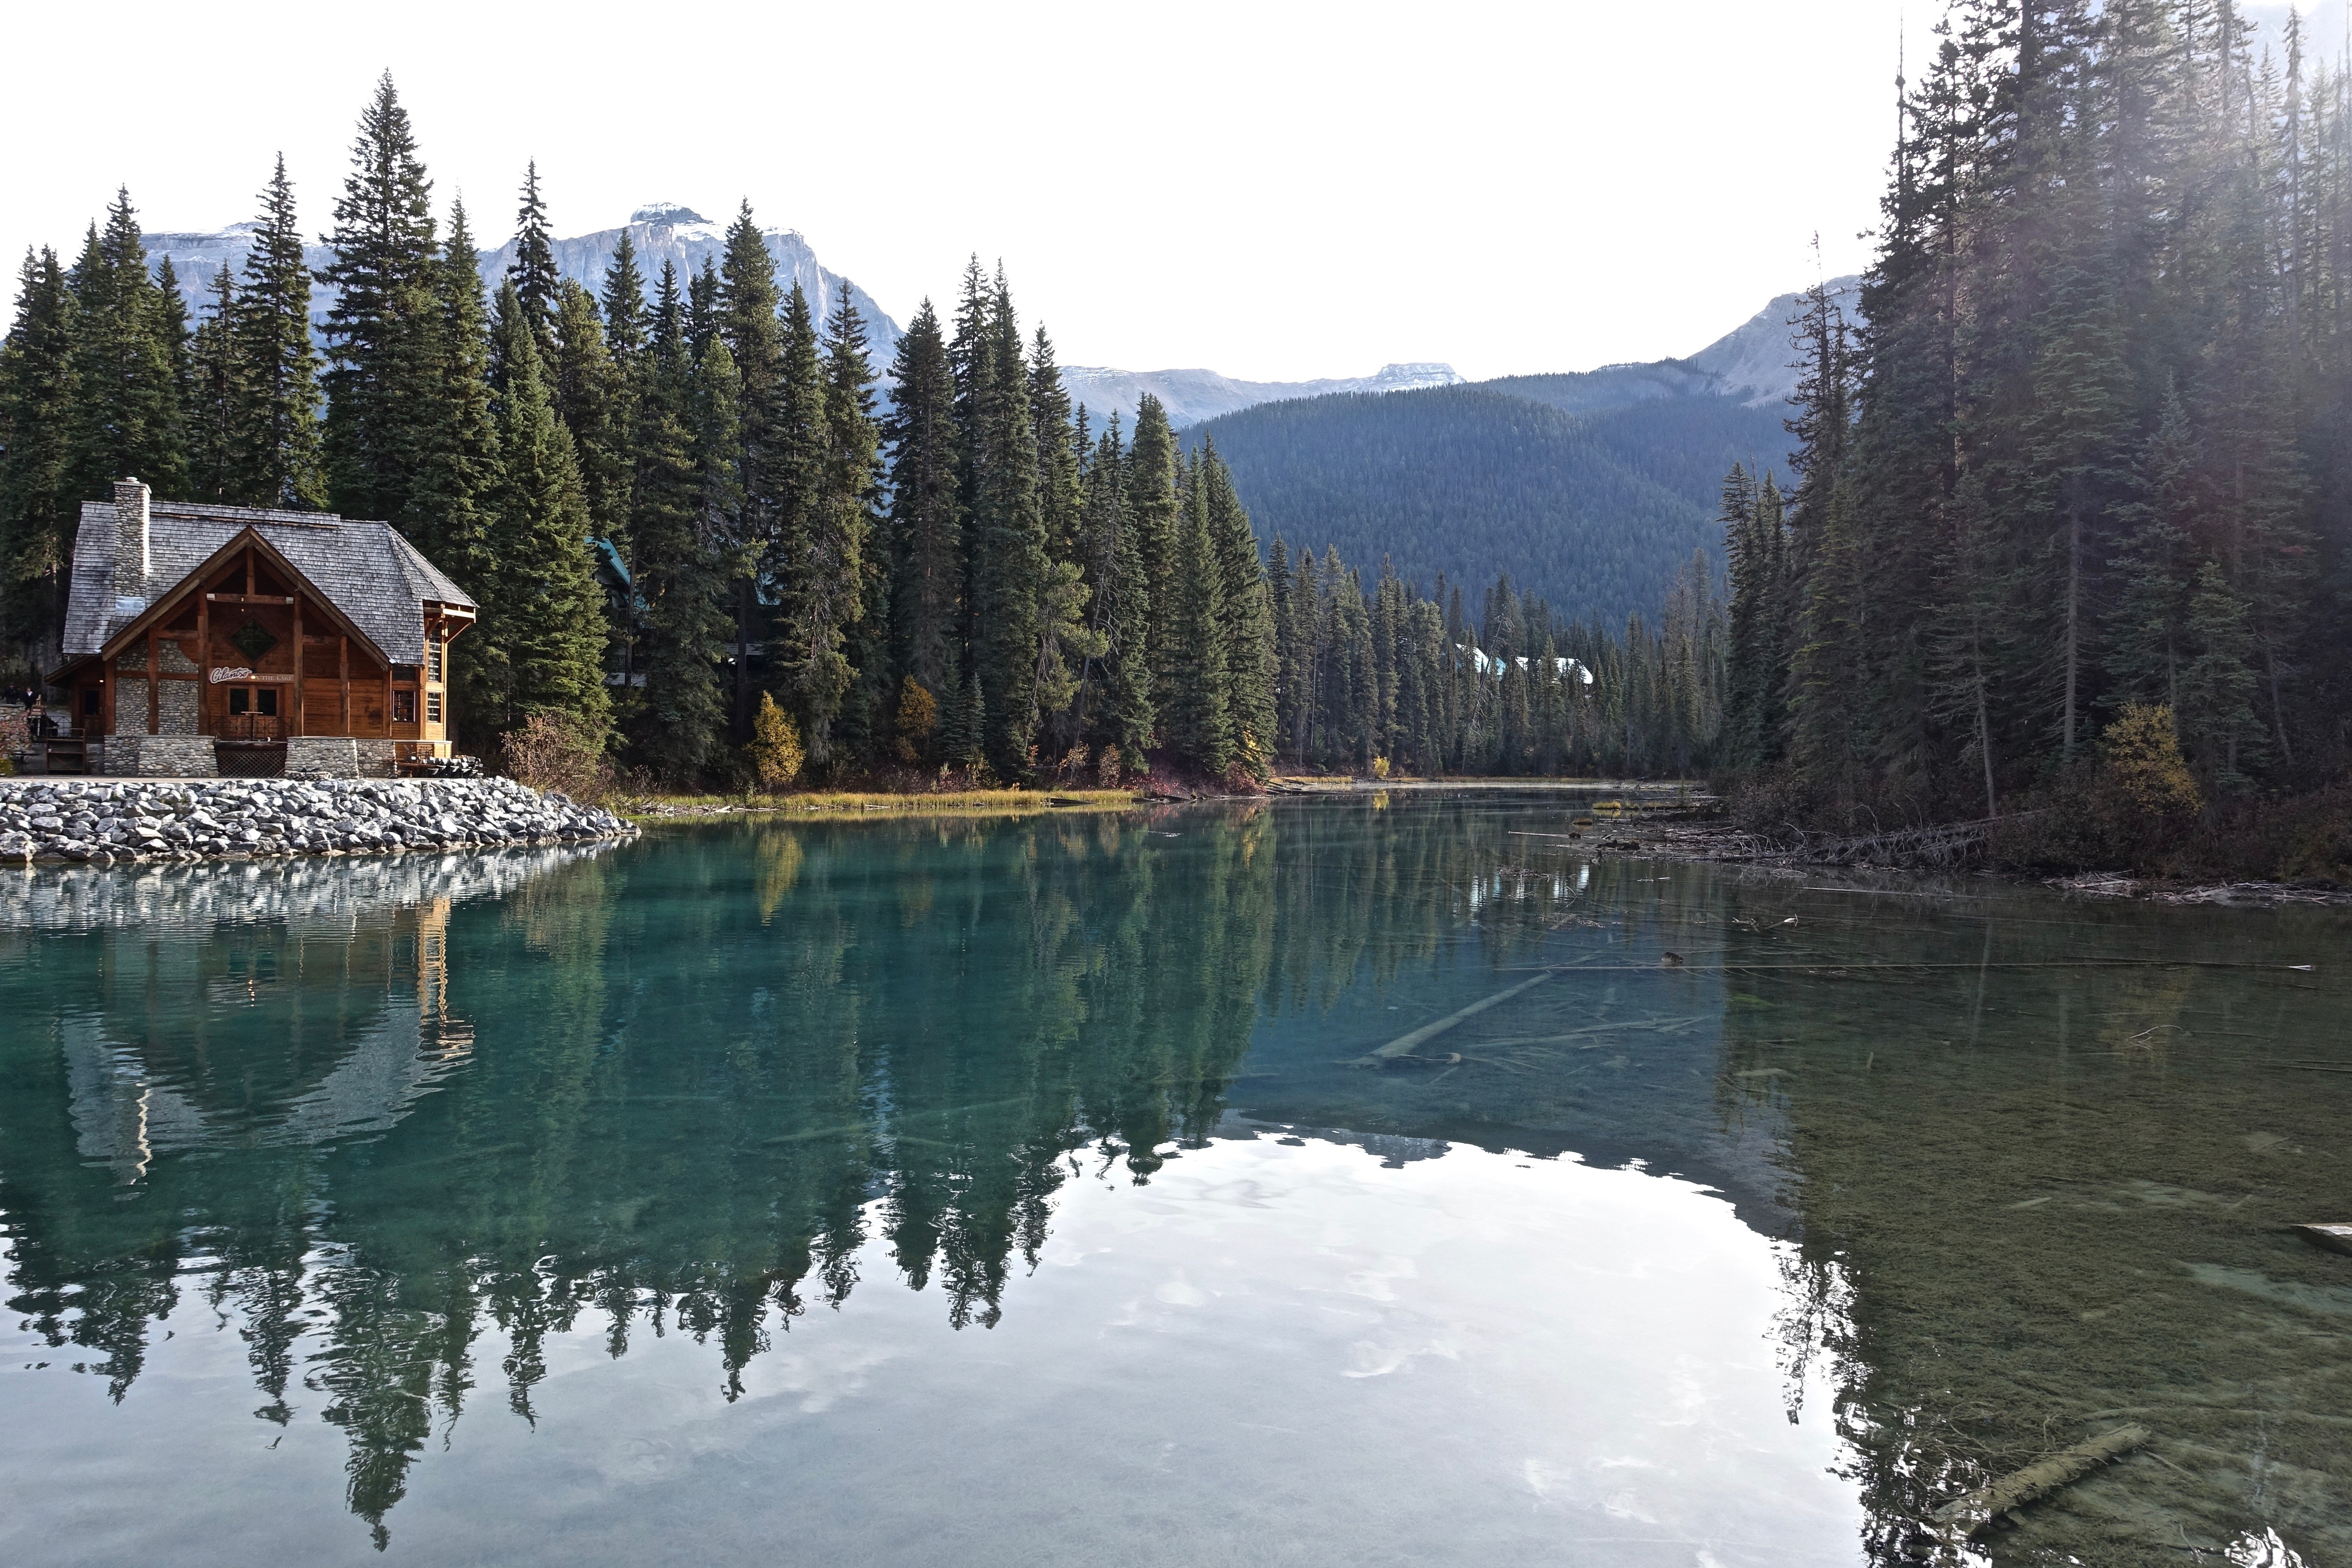 building-calm-waters-conifers-325947